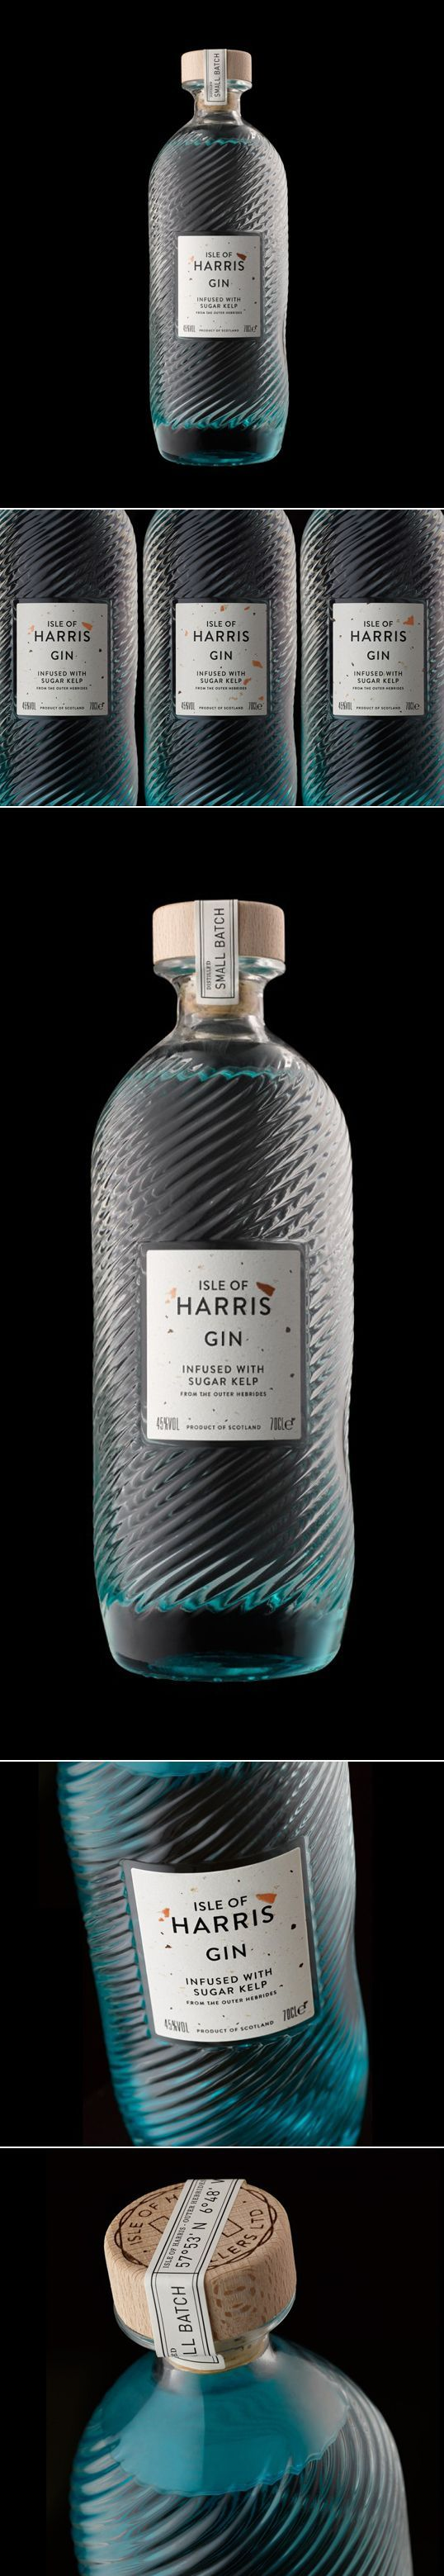 Lovely Package - Isle of Harris Gin